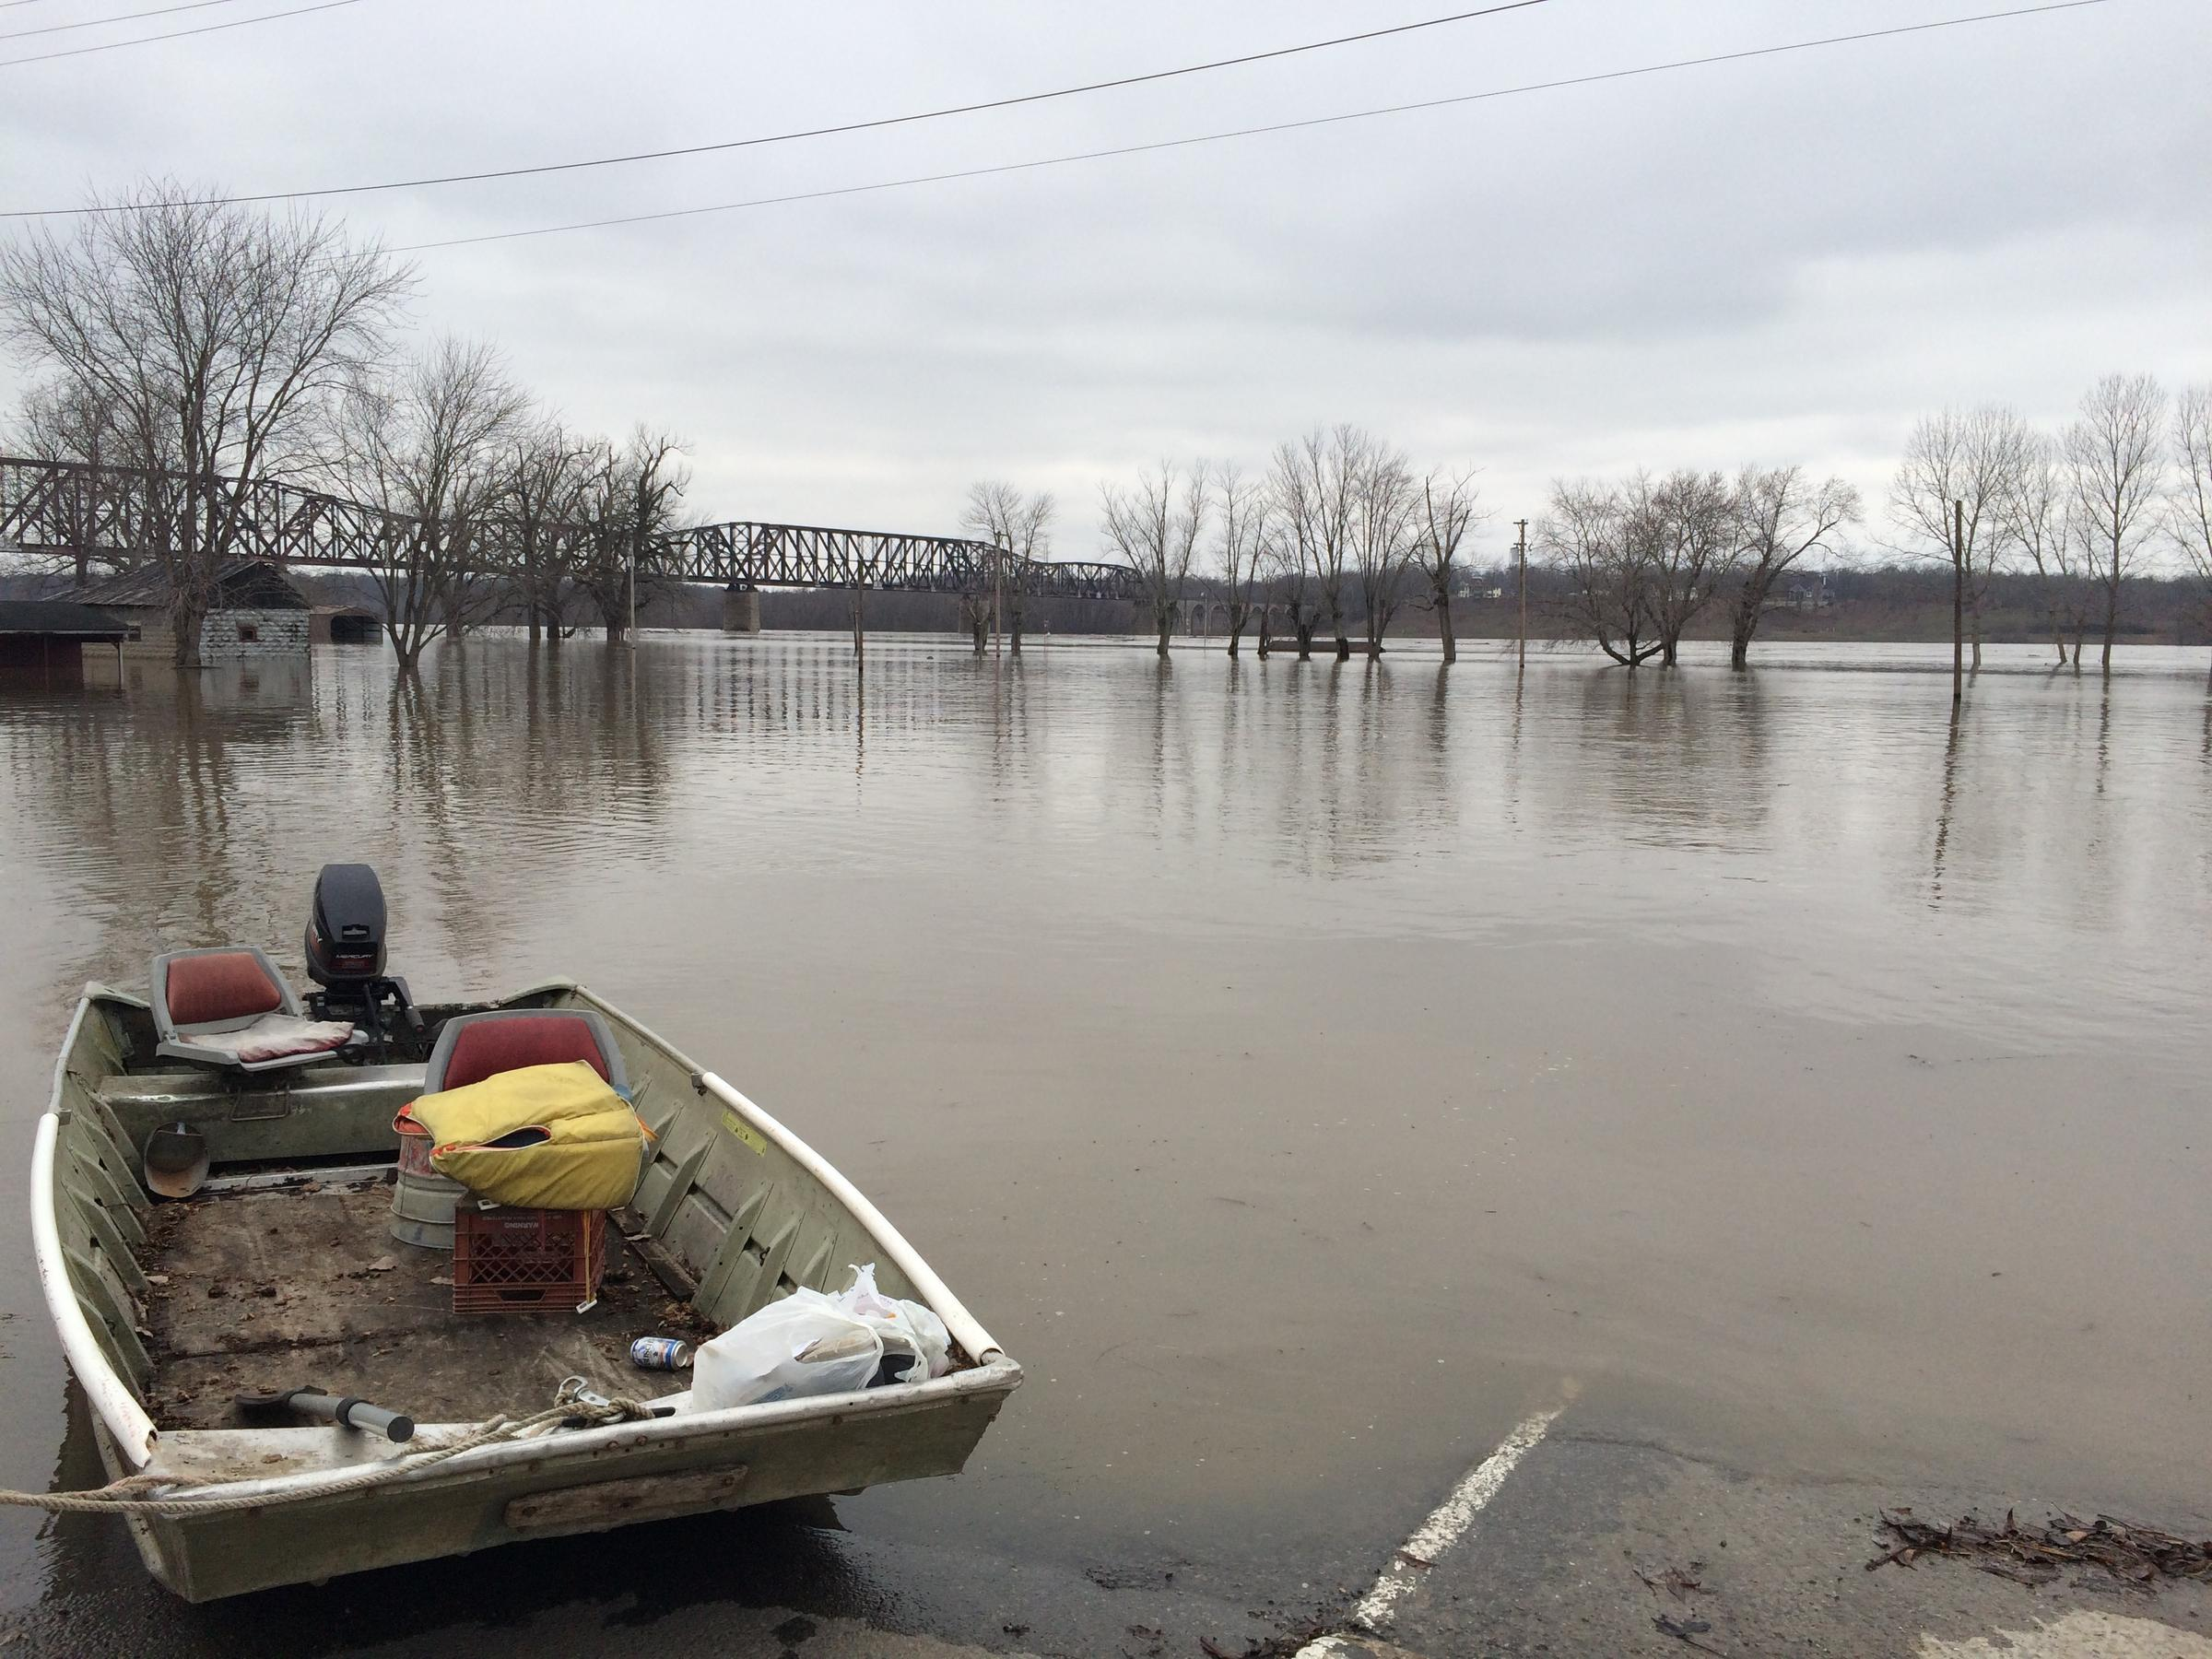 Illinois alexander county thebes - Flood Waters From The Mississippi River Filled The Streets Of Thebes Illlinois On Wednesday Dec 30 2015